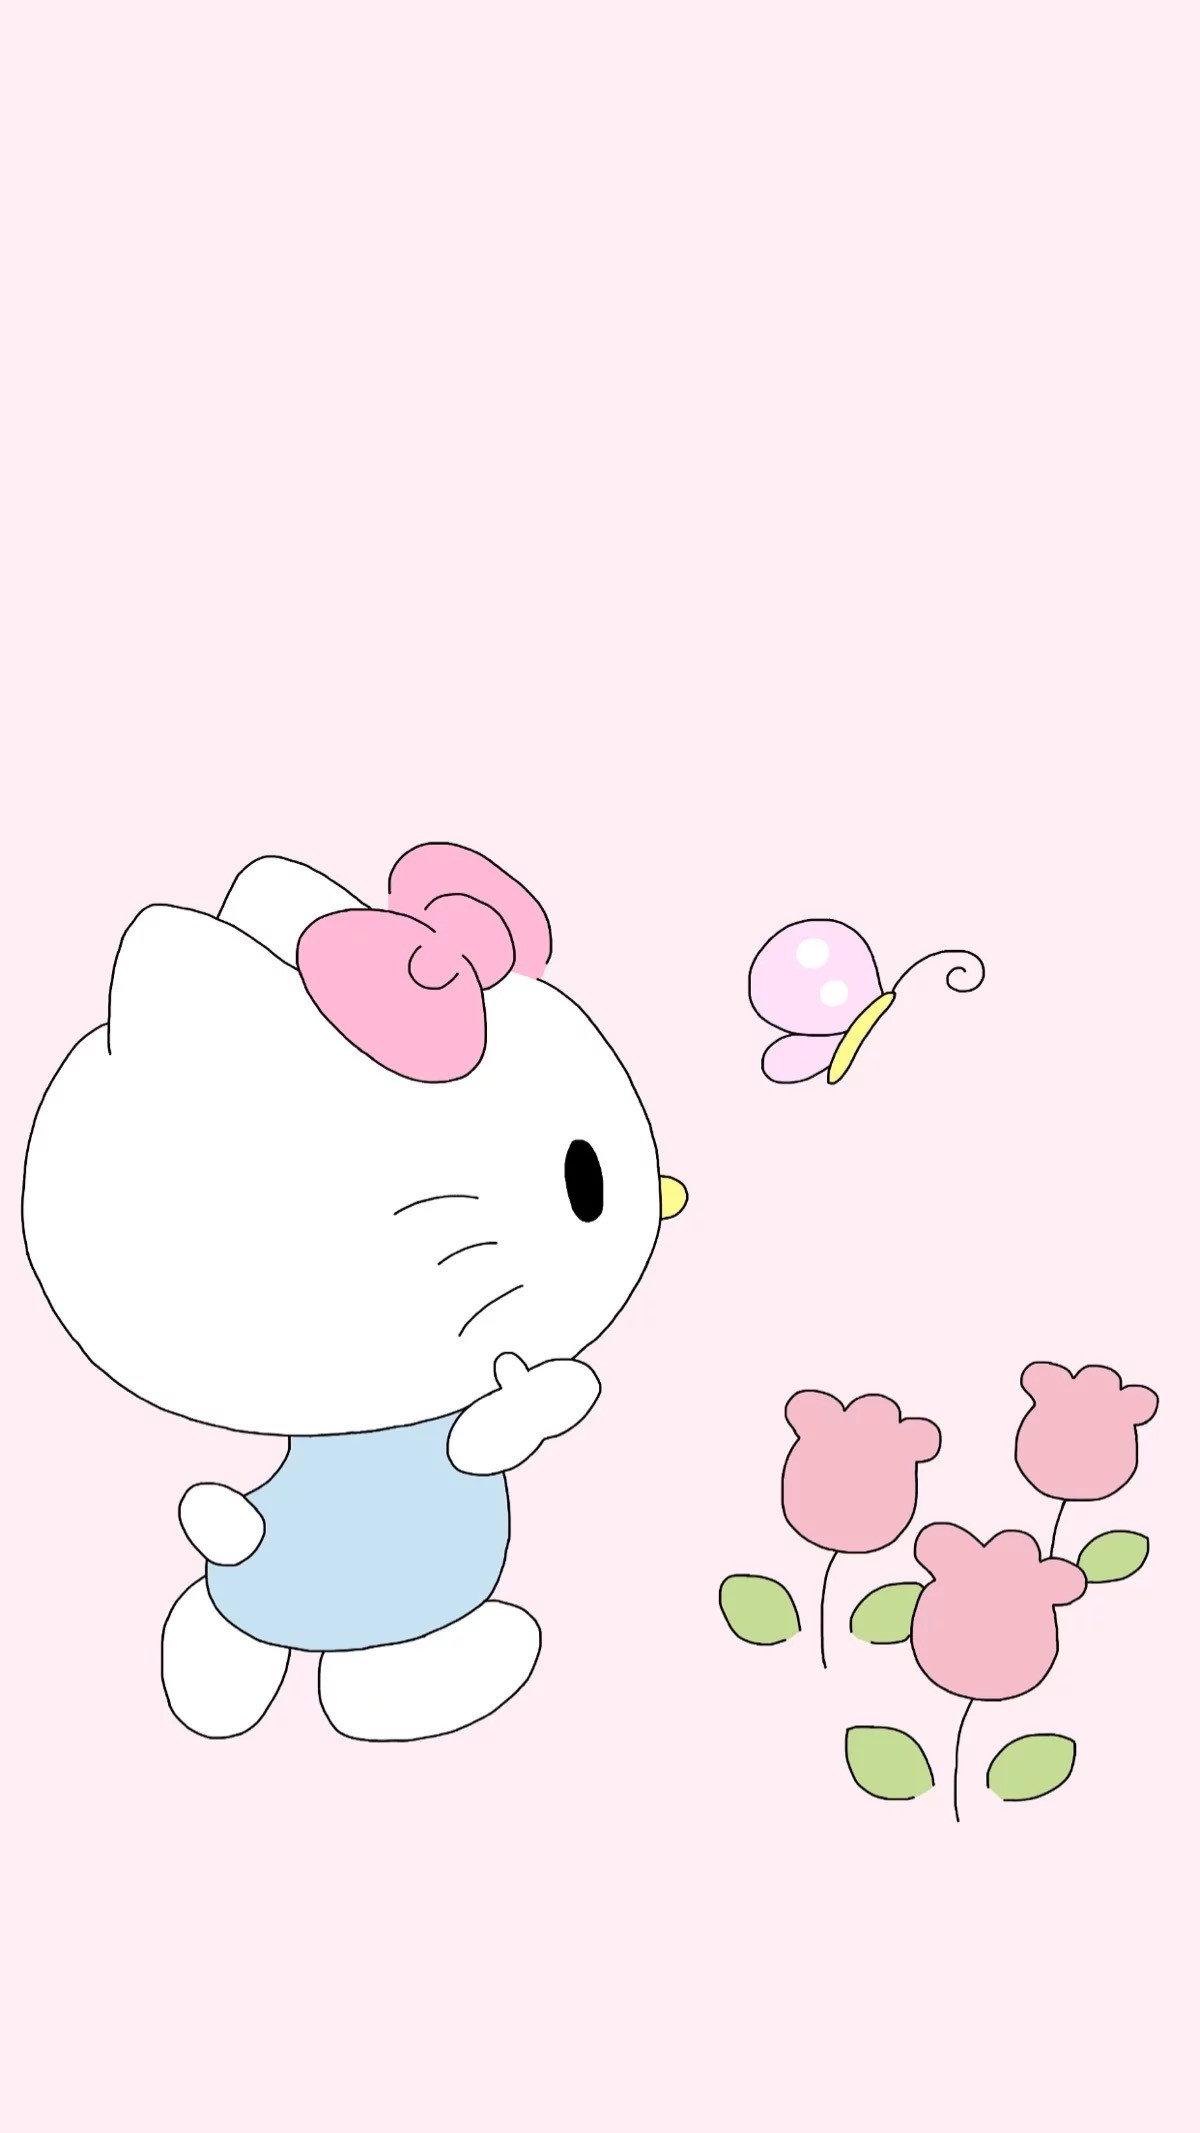 Amazing Wallpaper Hello Kitty Pastel - 574030-hello-kitty-easter-wallpaper-1200x2133-macbook  Perfect Image Reference_85653.jpg